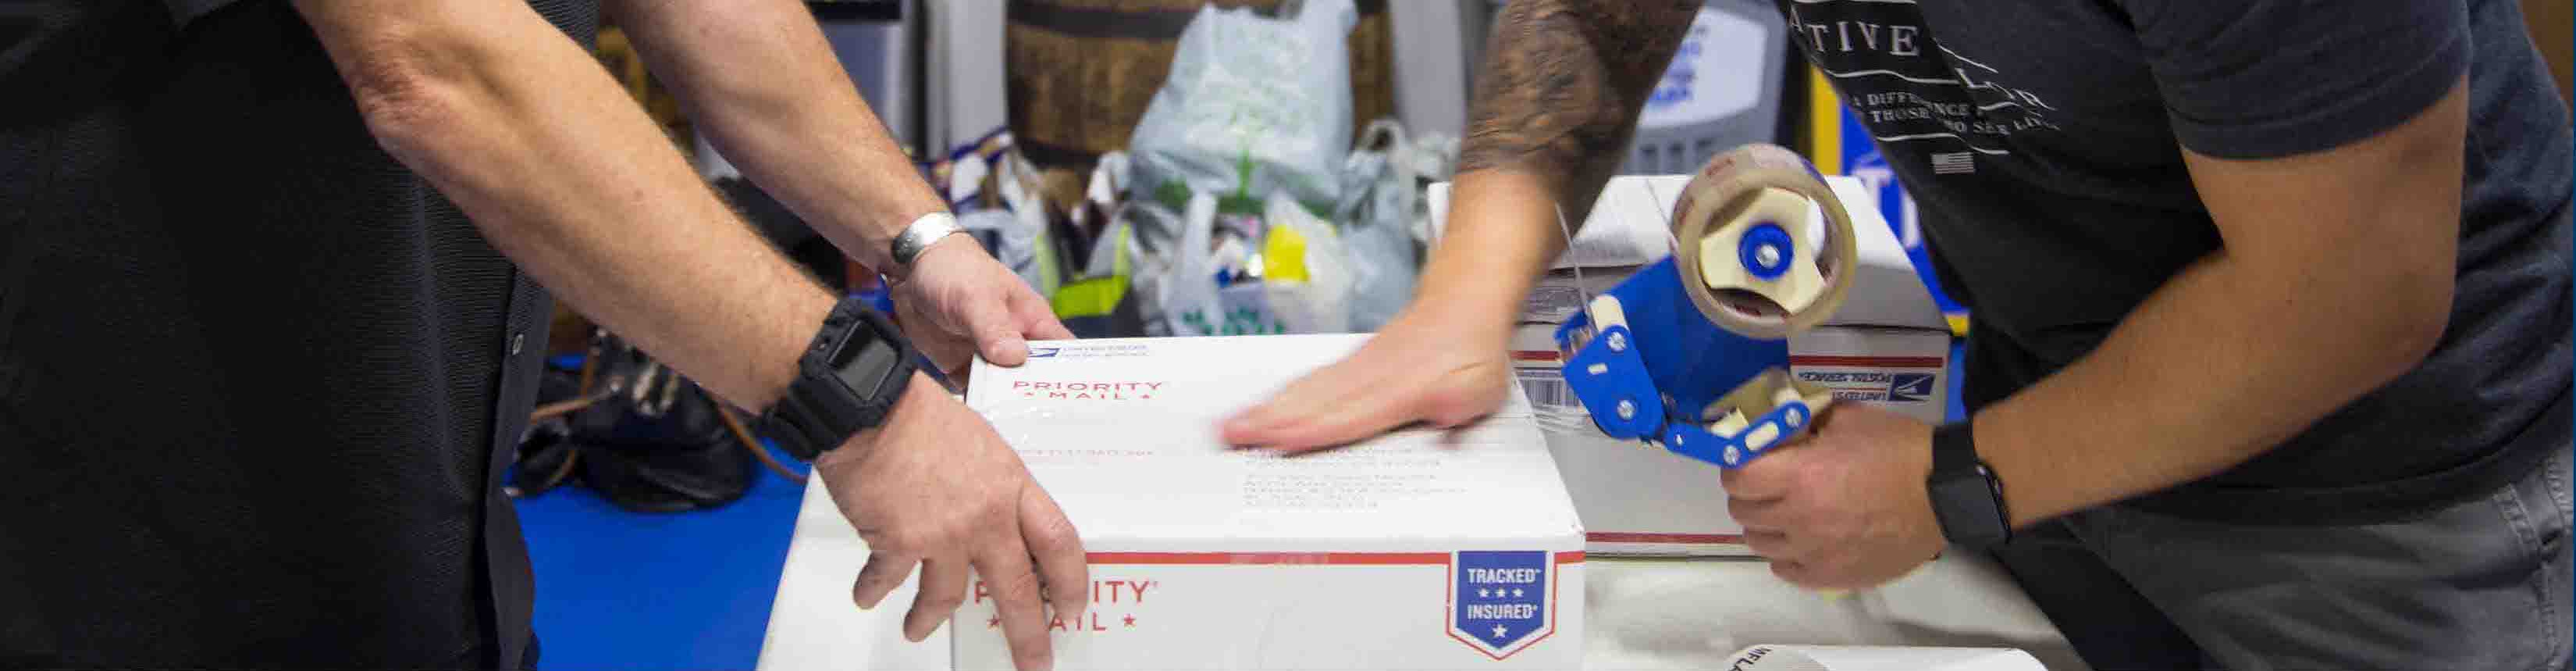 ADS Inc. sponsors care package for troops through Active Valor